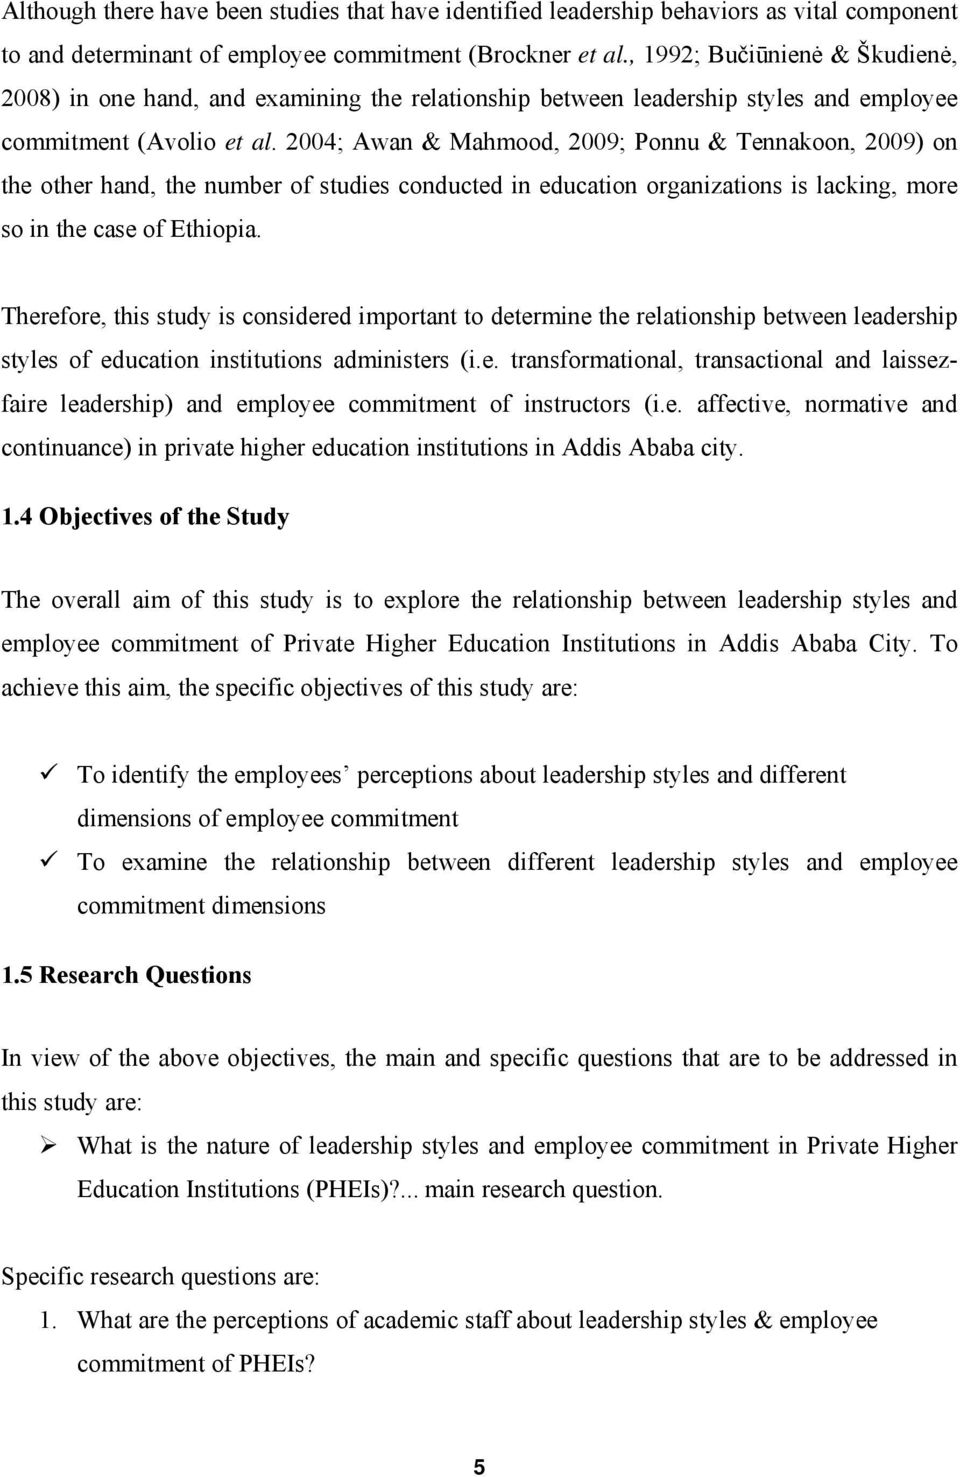 research on leadership styles